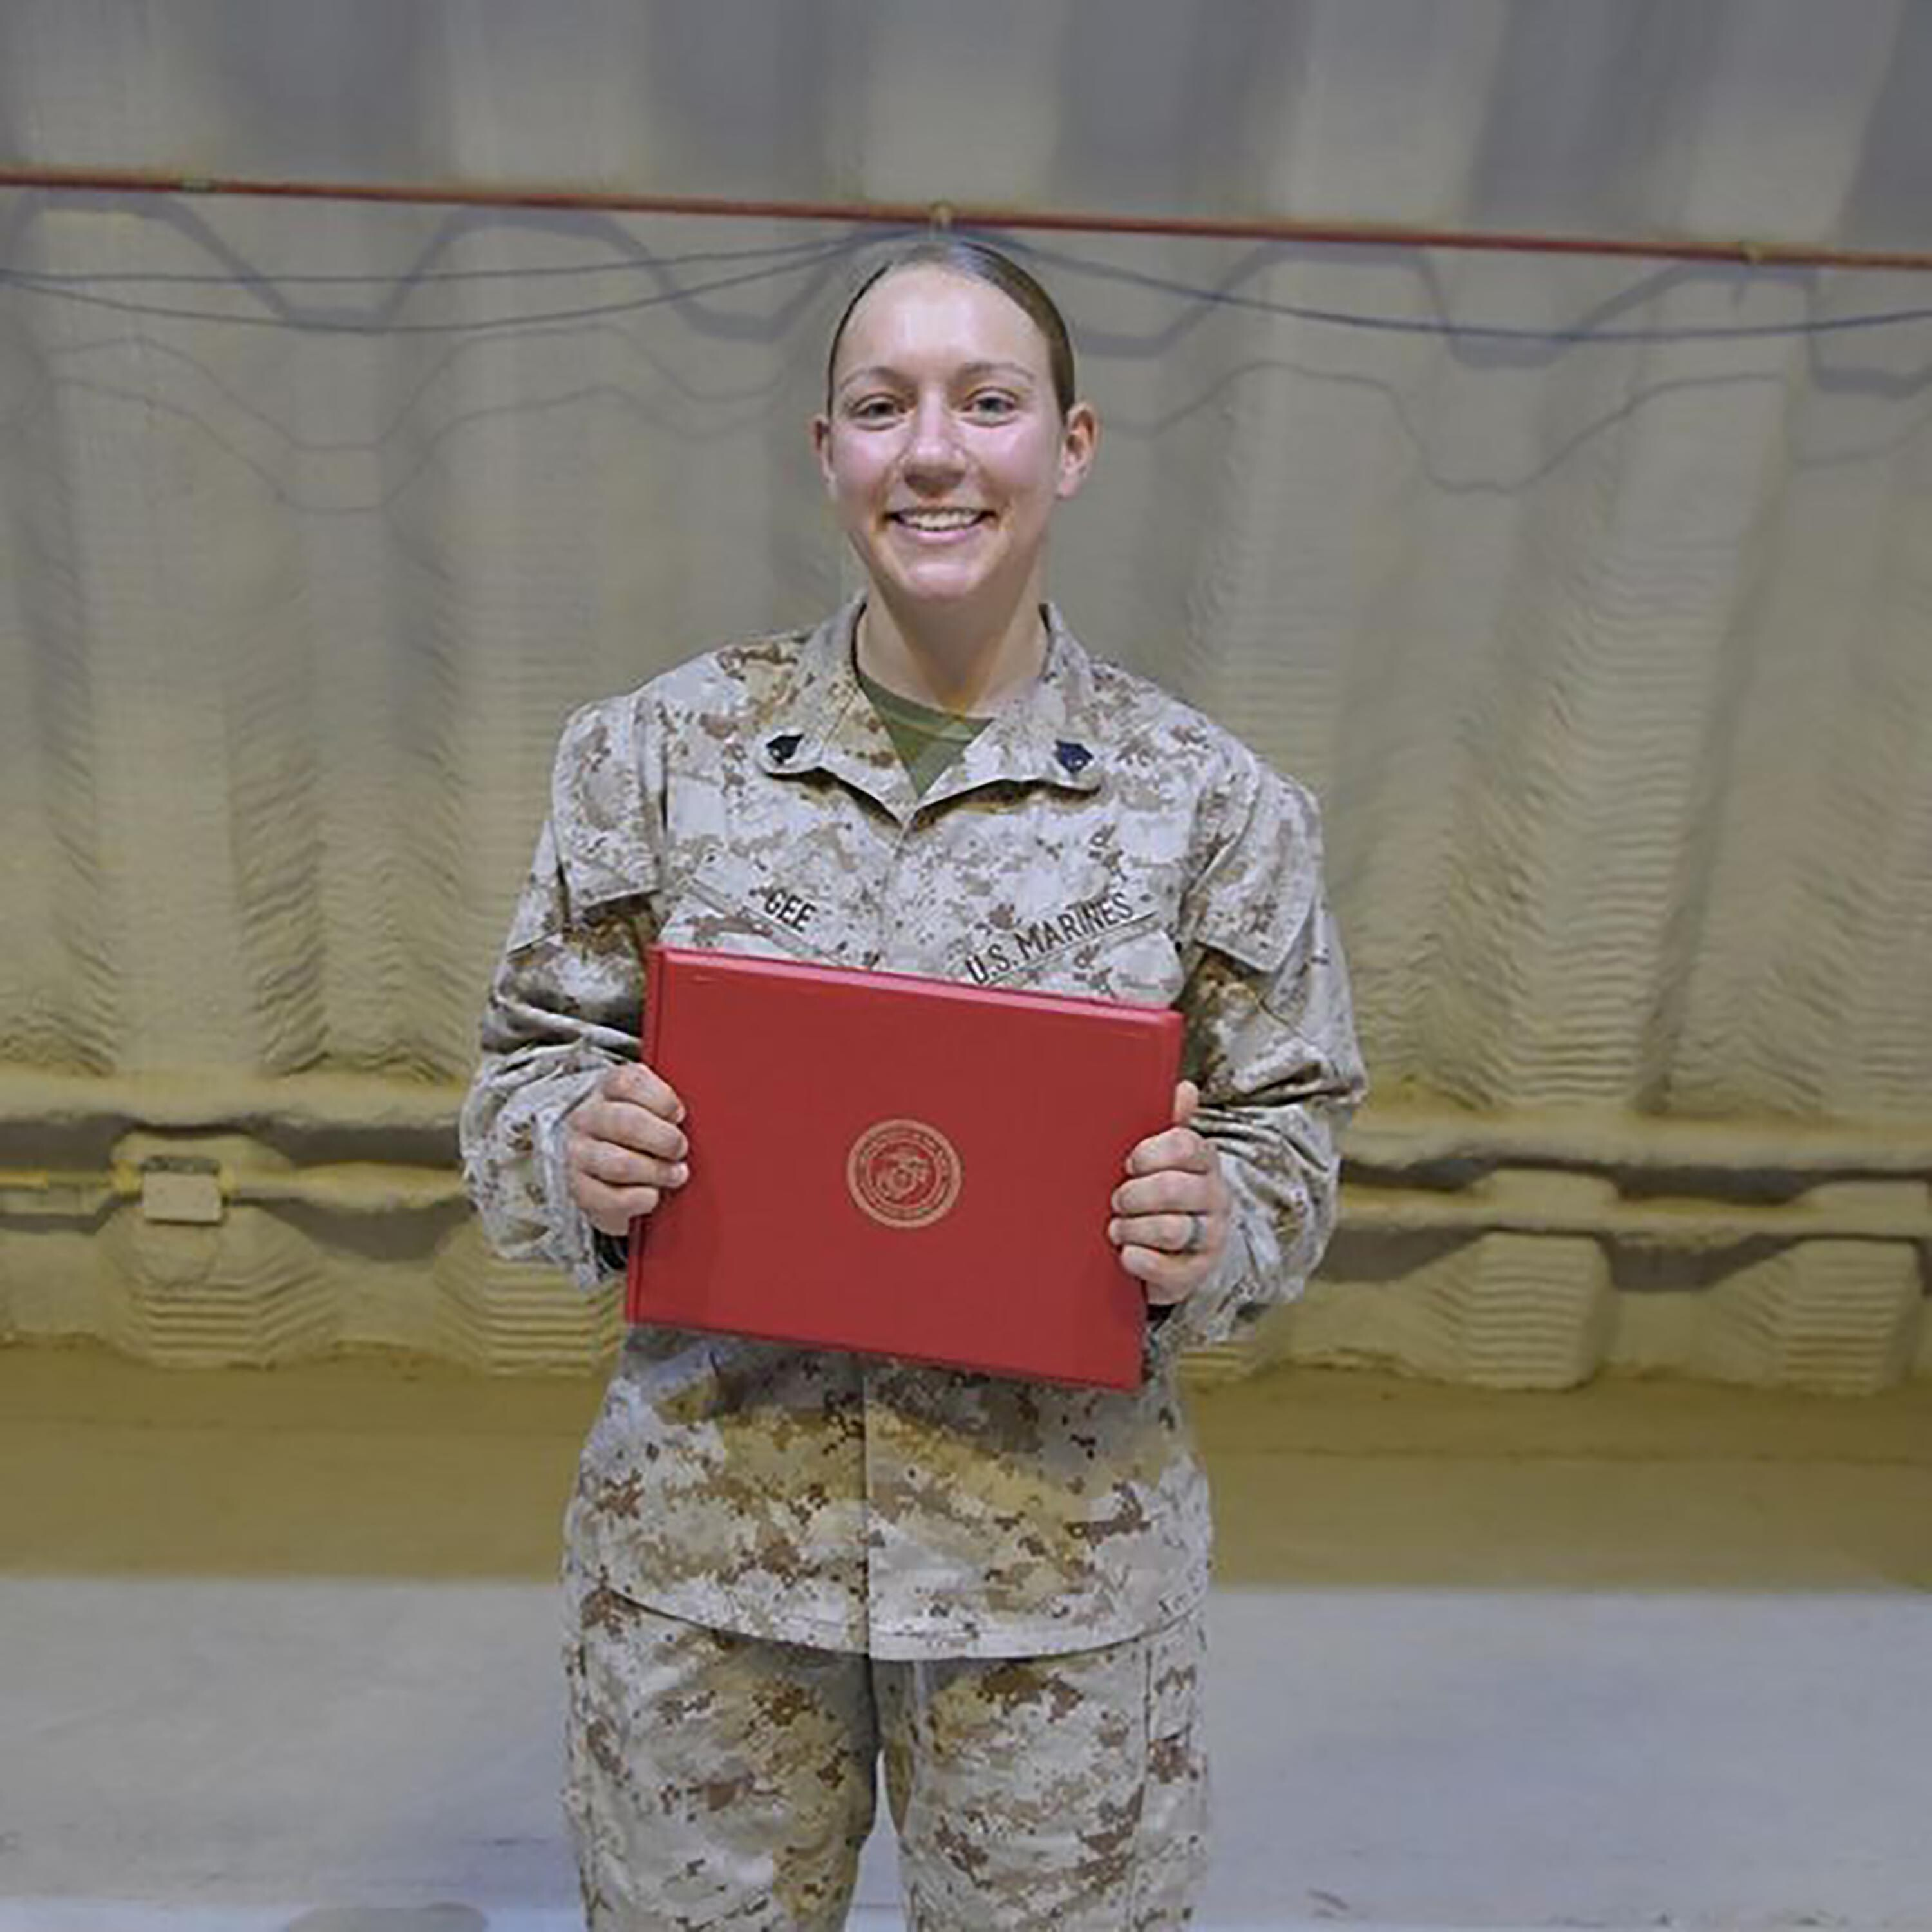 Nicole Gee, Marine killed in Kabul attack, described as a 'light in this dark world'